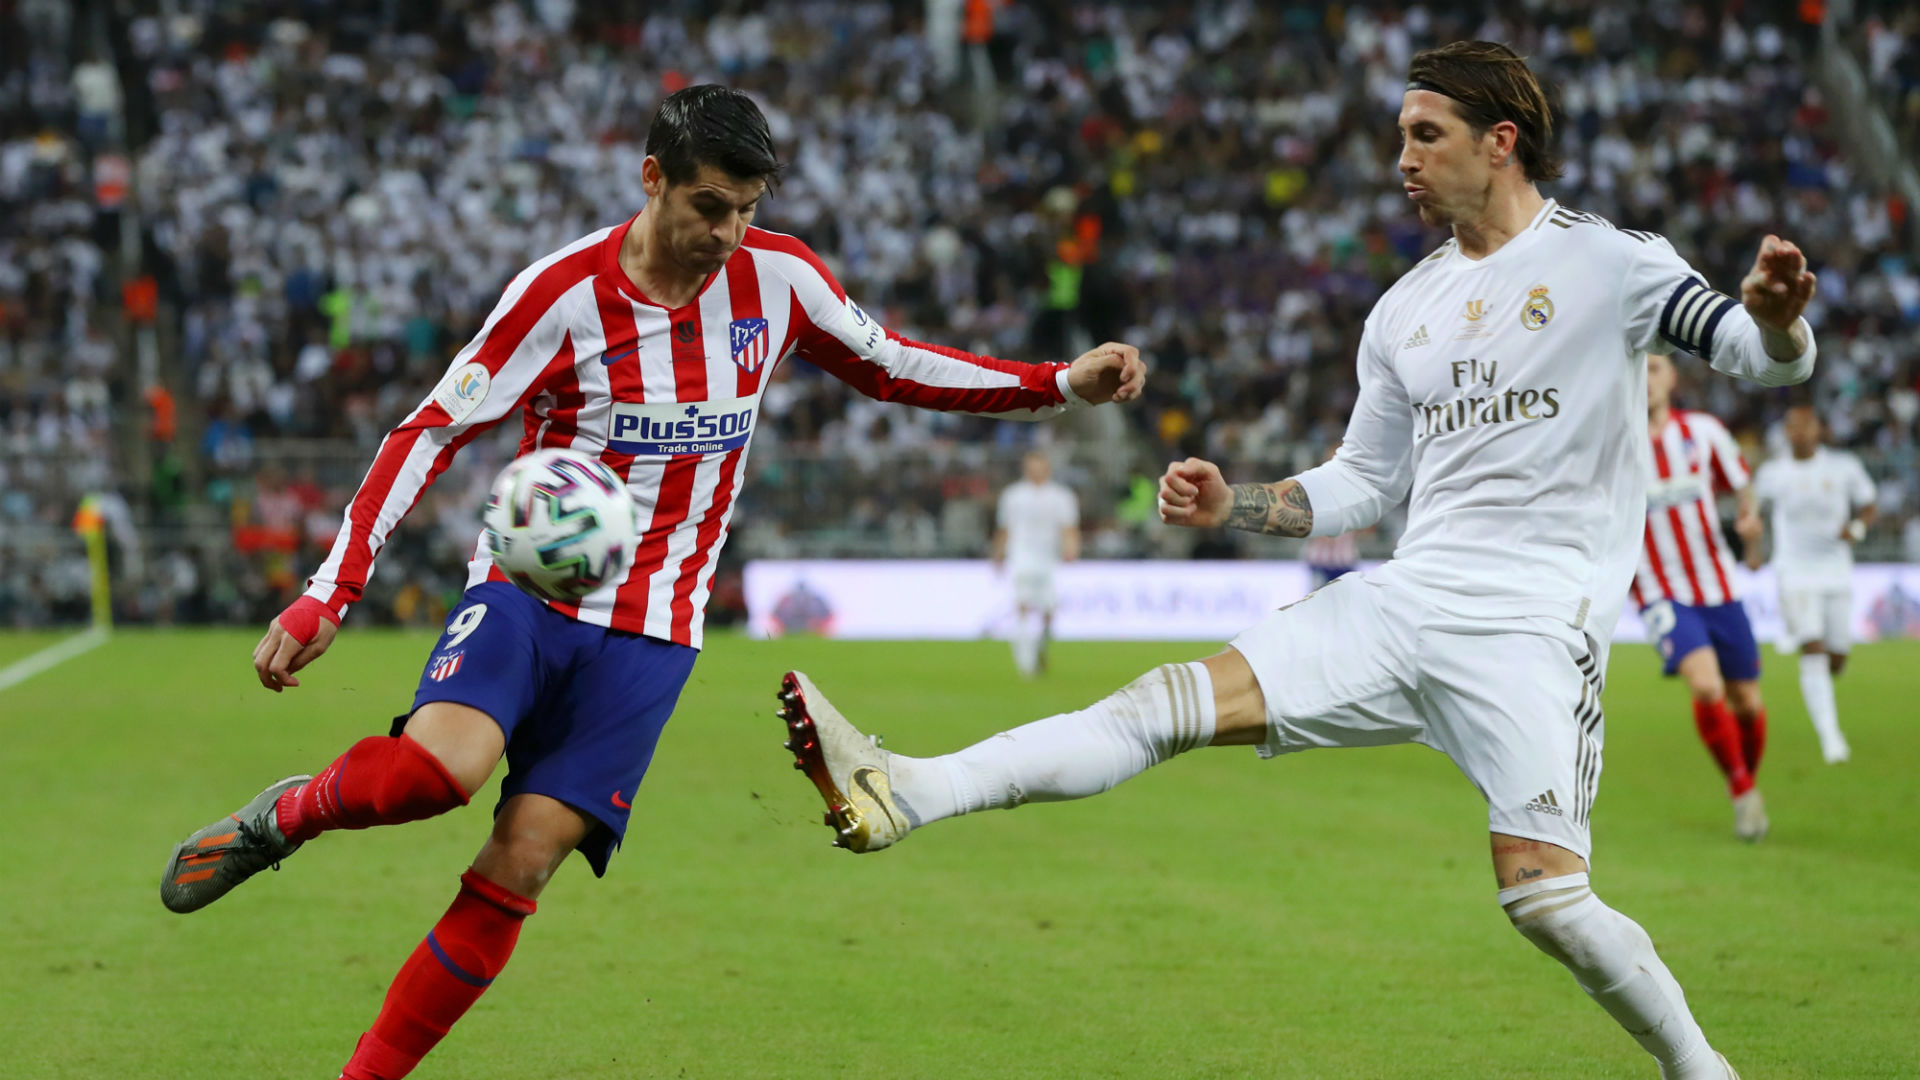 Real Madrid V Atletico Madrid Match Report 12 01 2020 Super Cup Goal Com